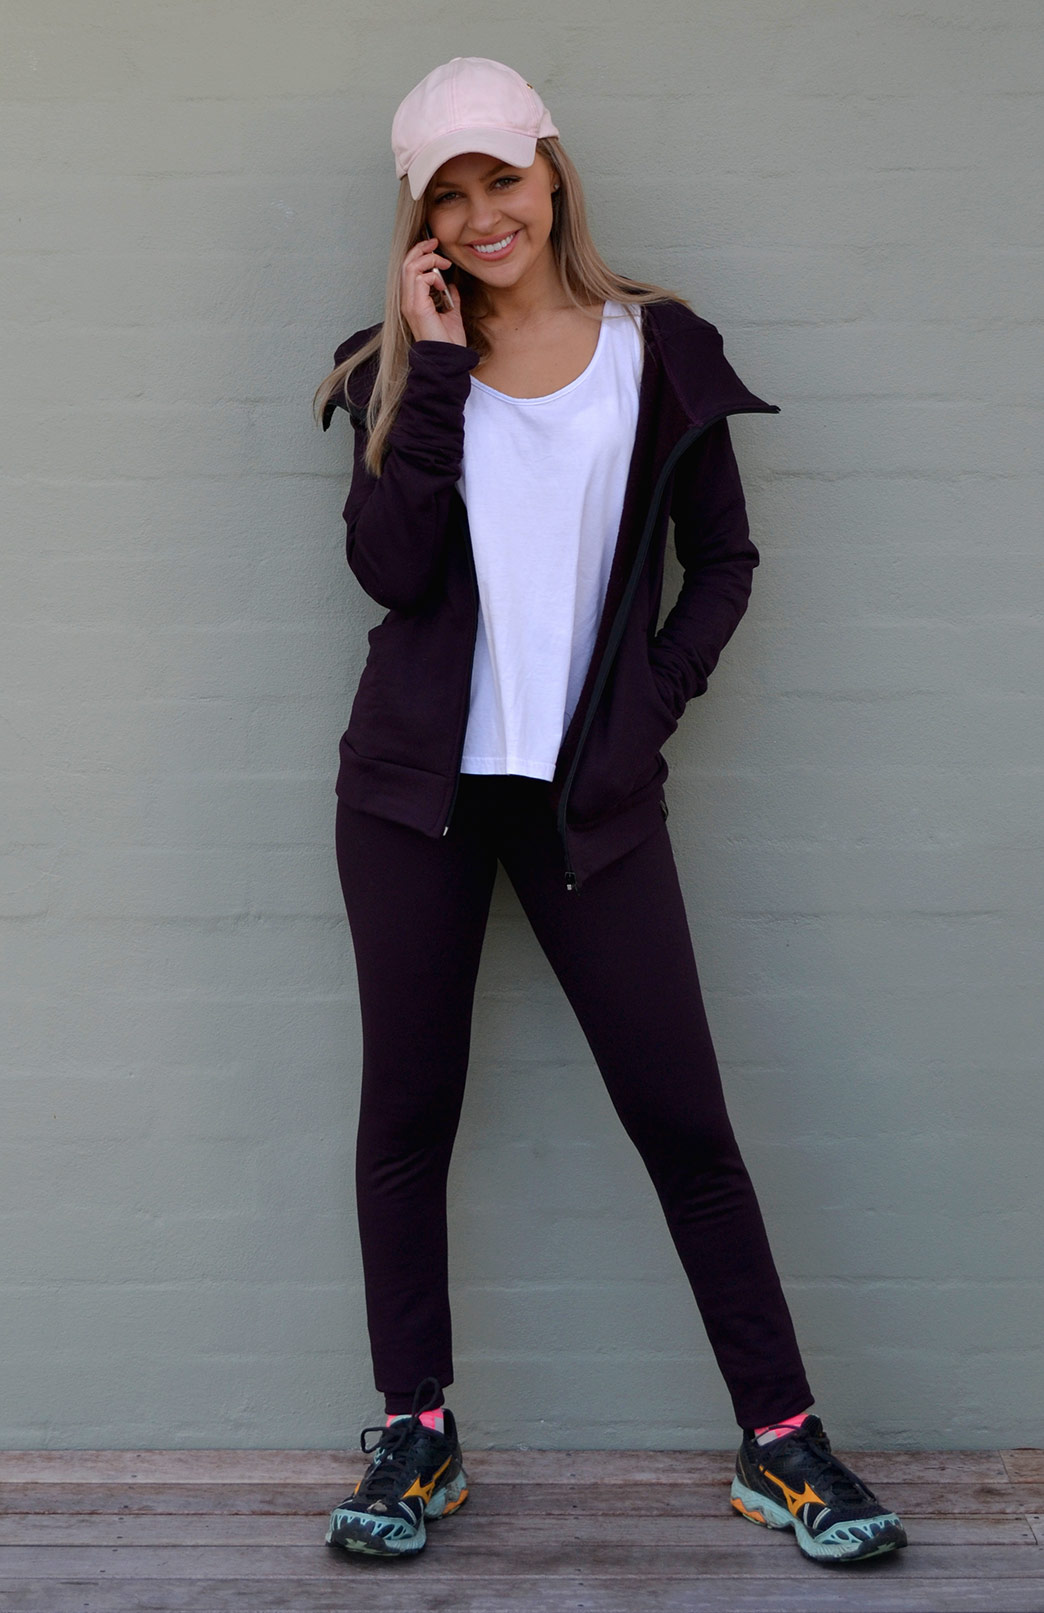 Fleece Leggings - Women's Plum Merino Blend Fleece Winter Leggings - Smitten Merino Tasmania Australia